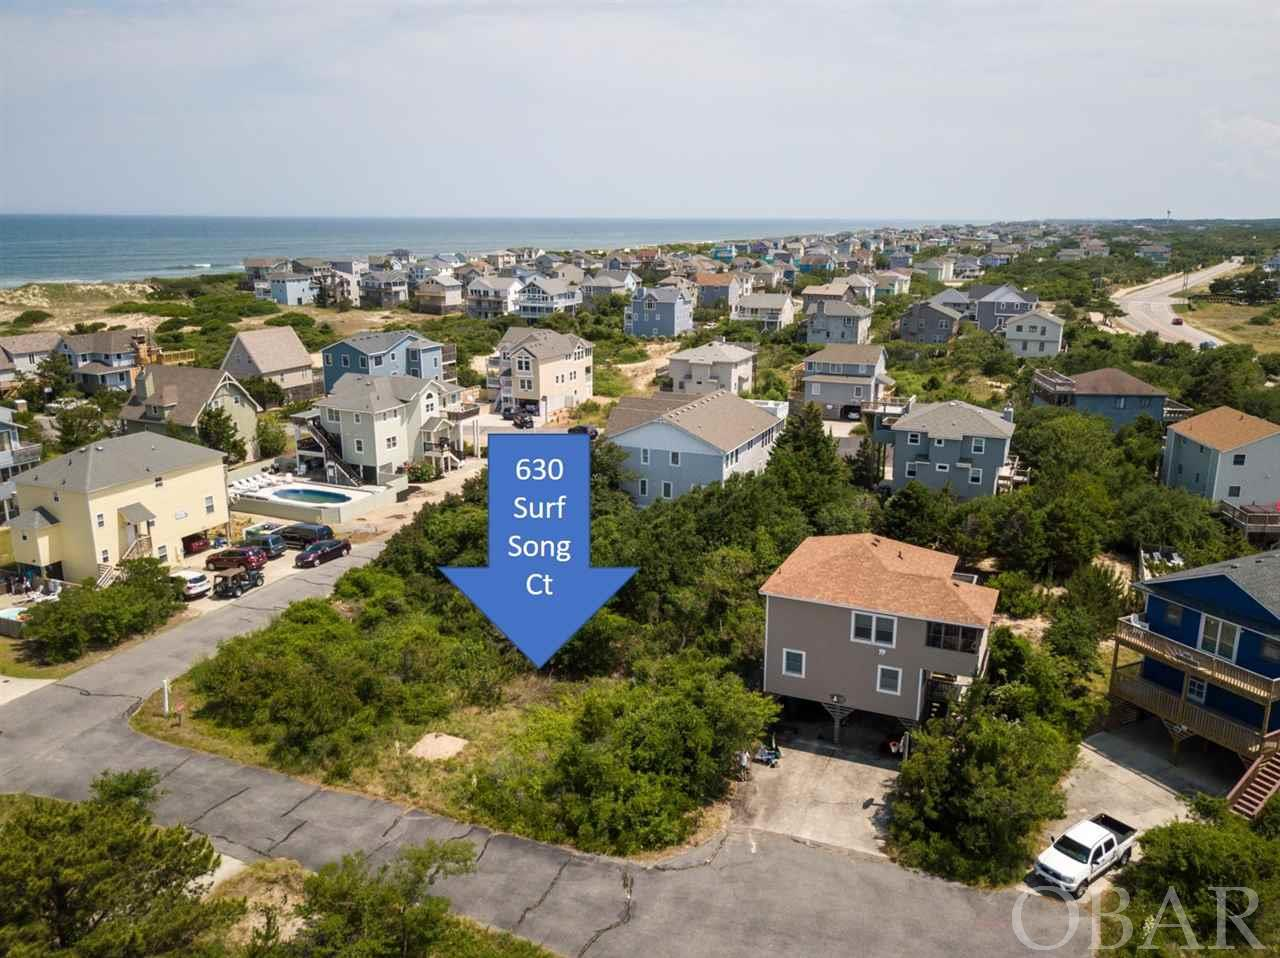 630 Surf Song Court, Corolla, NC 27927, ,Lots/land,For sale,Surf Song Court,105297